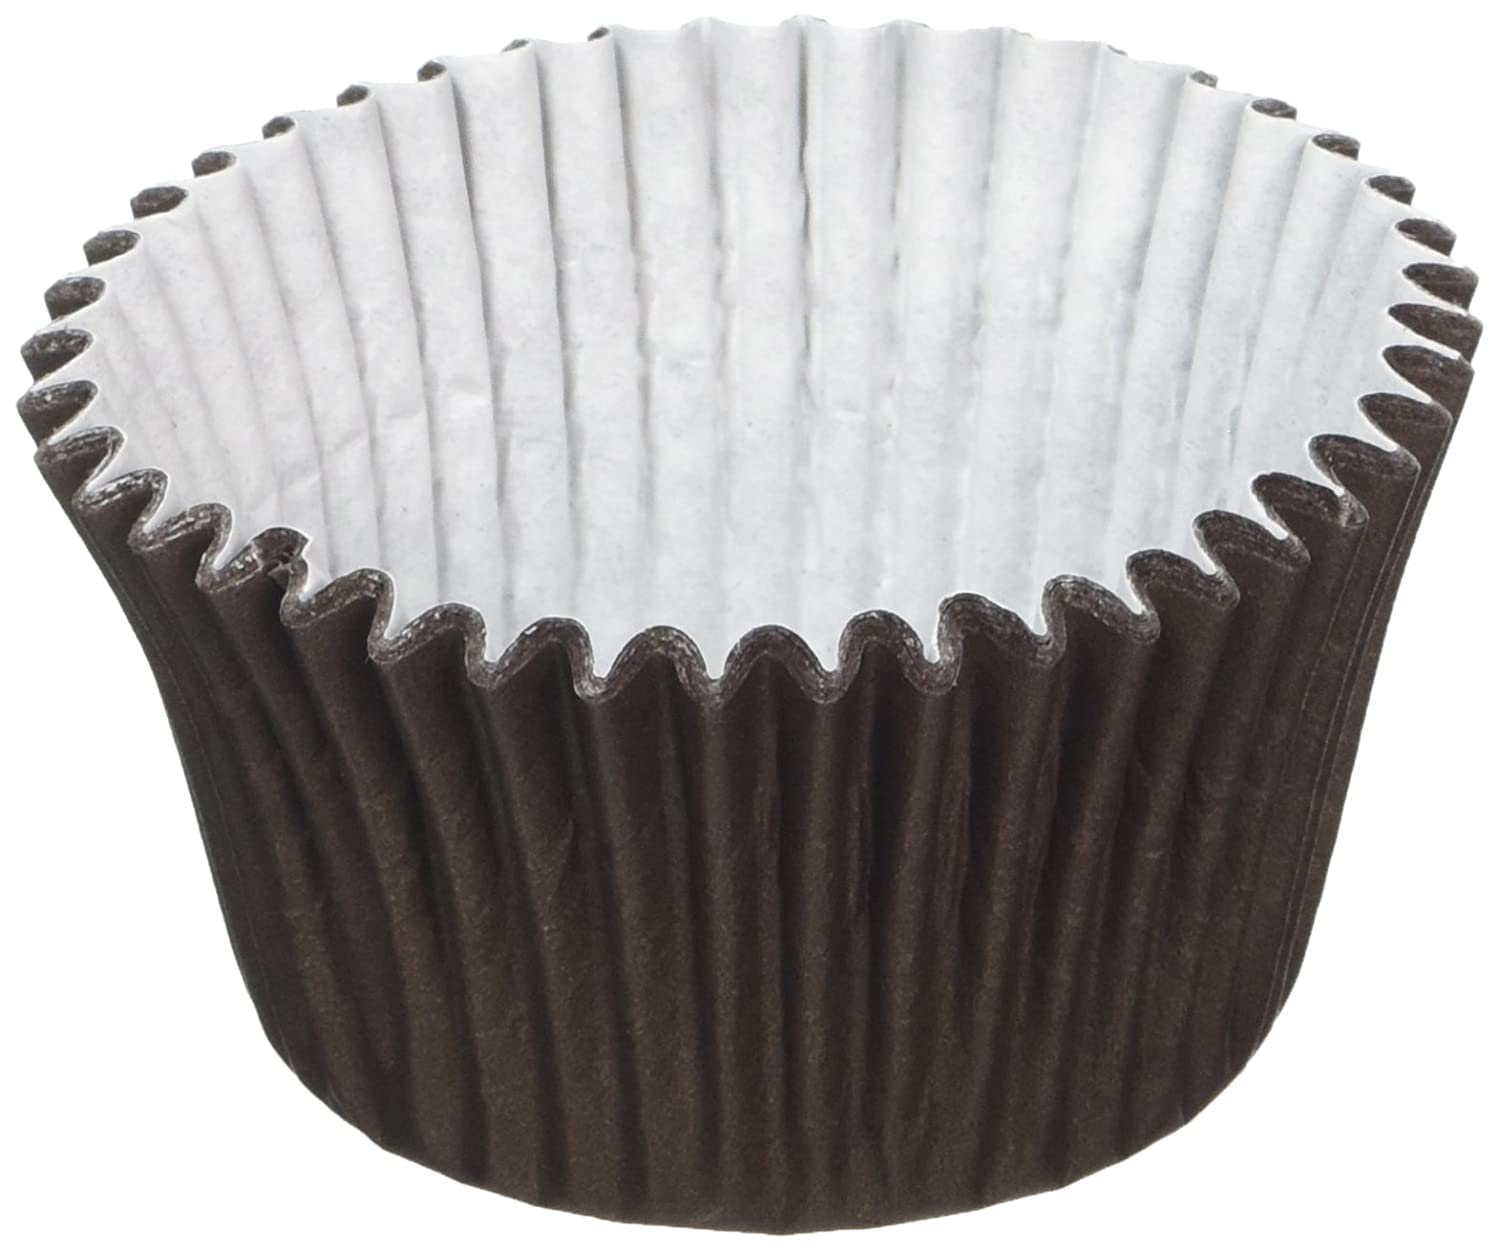 Holly Cupcakes 180 Excellent Quality Black Muffin Cases